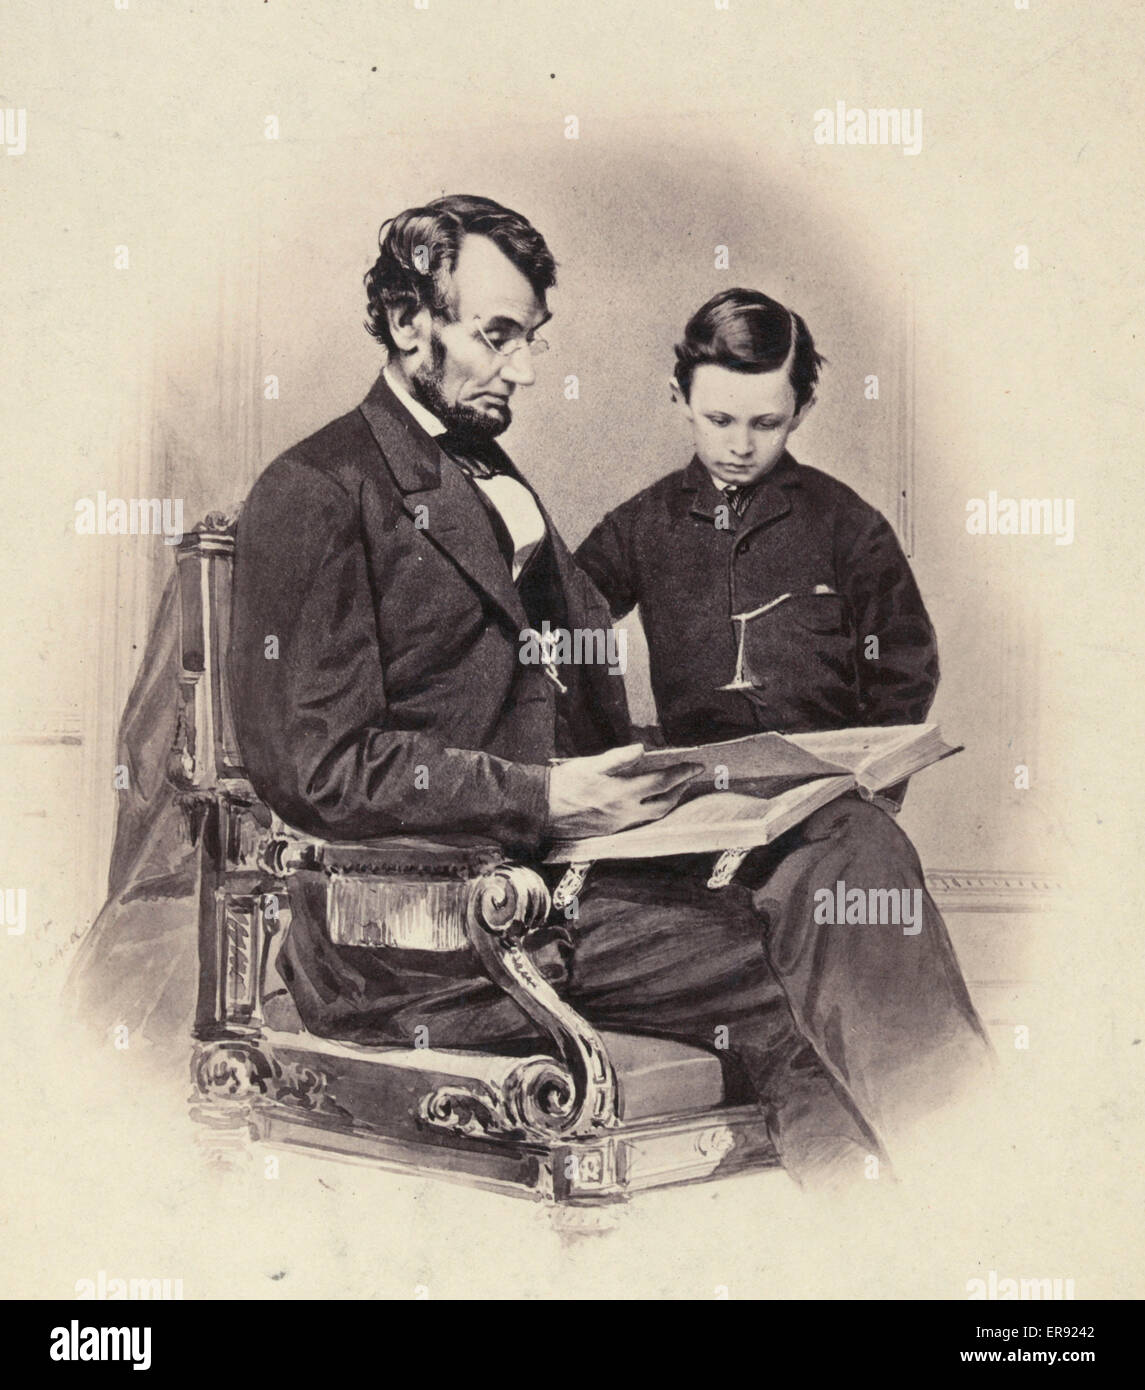 President A Lincoln Reading The Bible To His Son